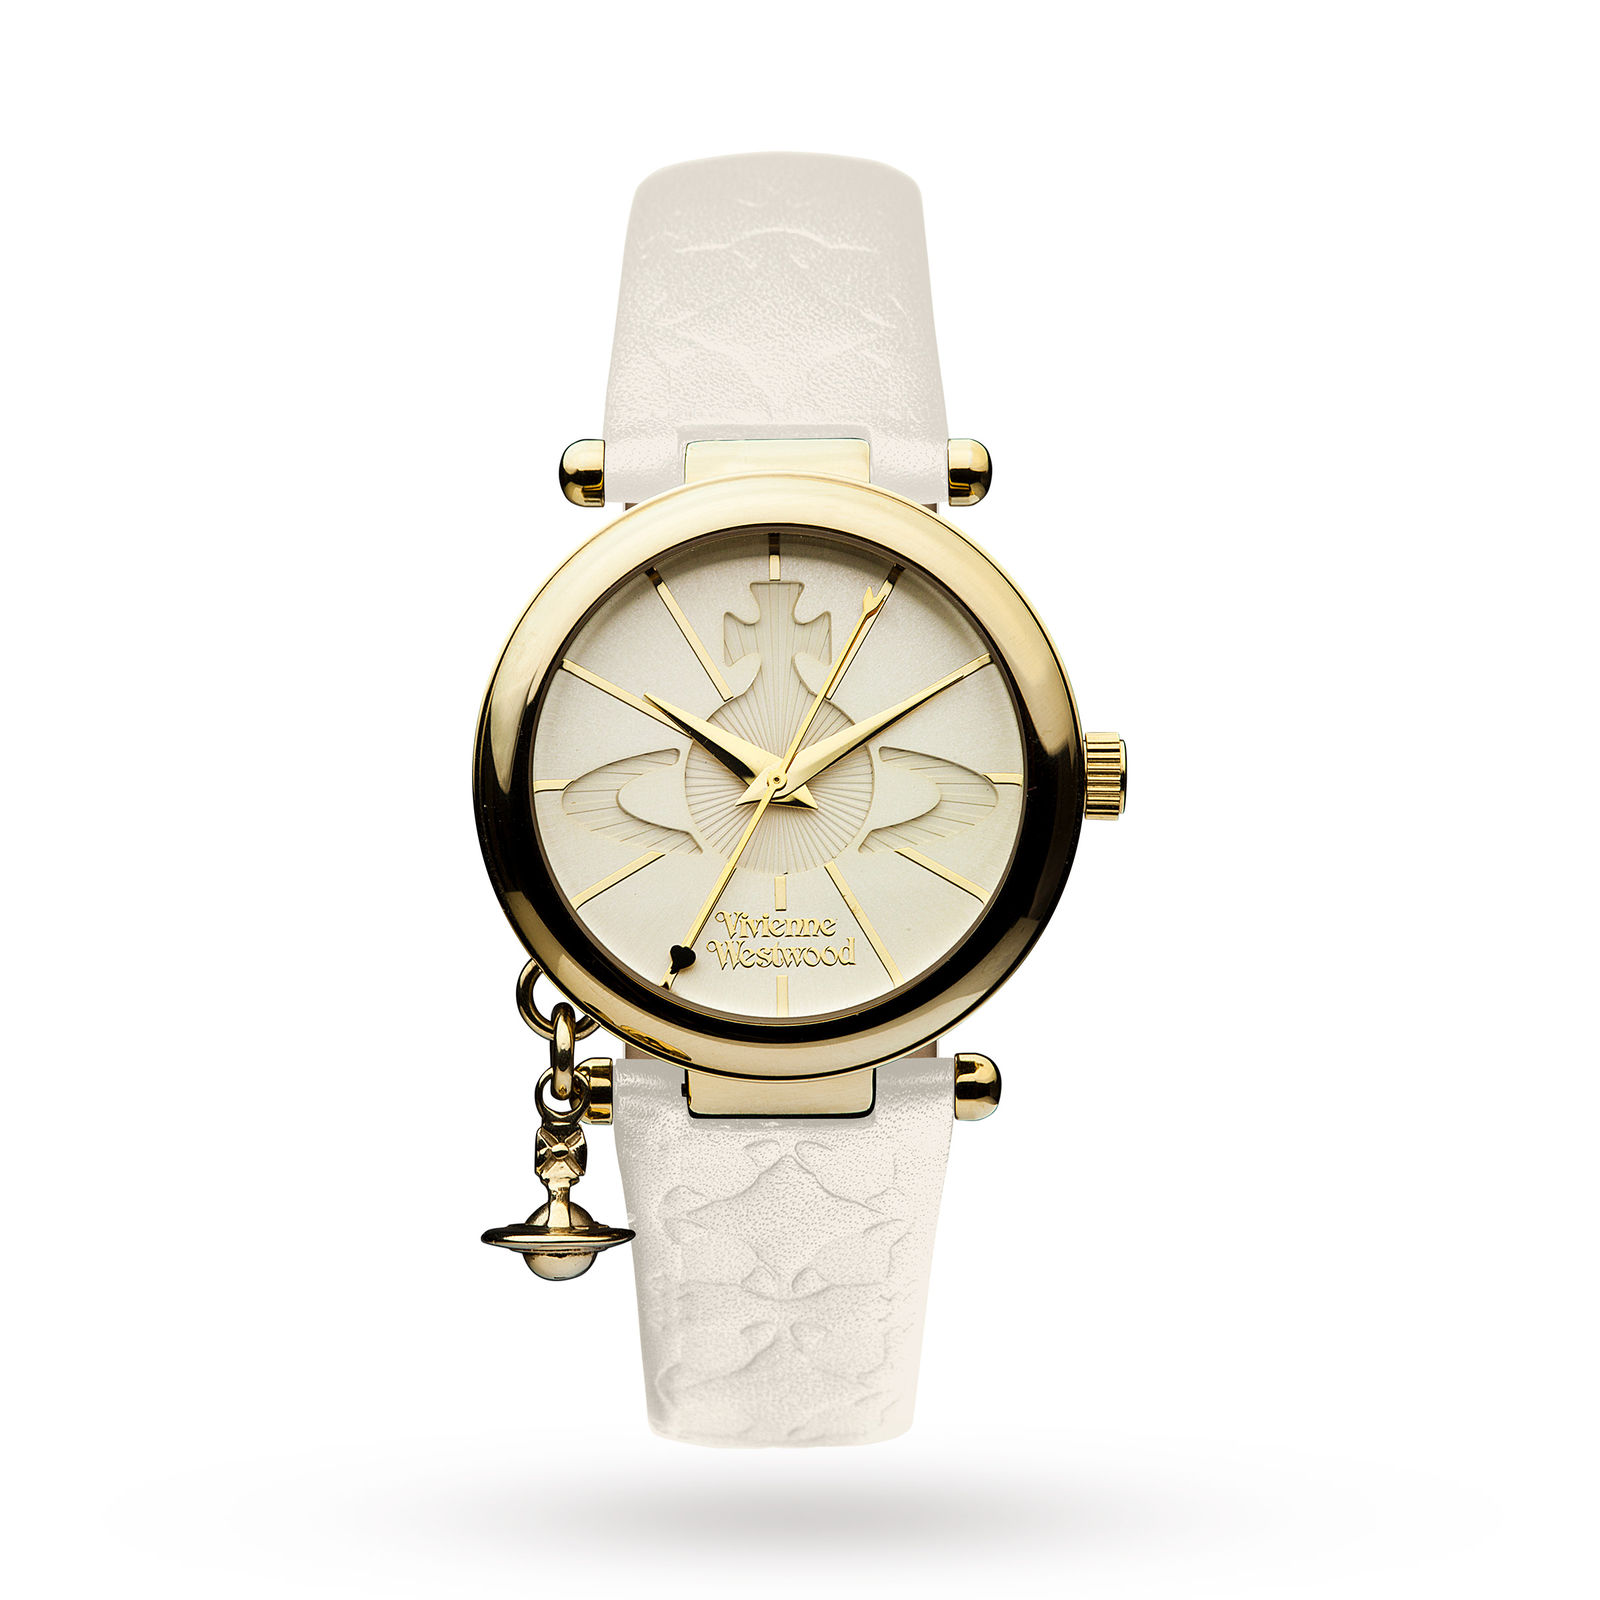 Vivienne Westwood Orb 2 White Ladies Watch